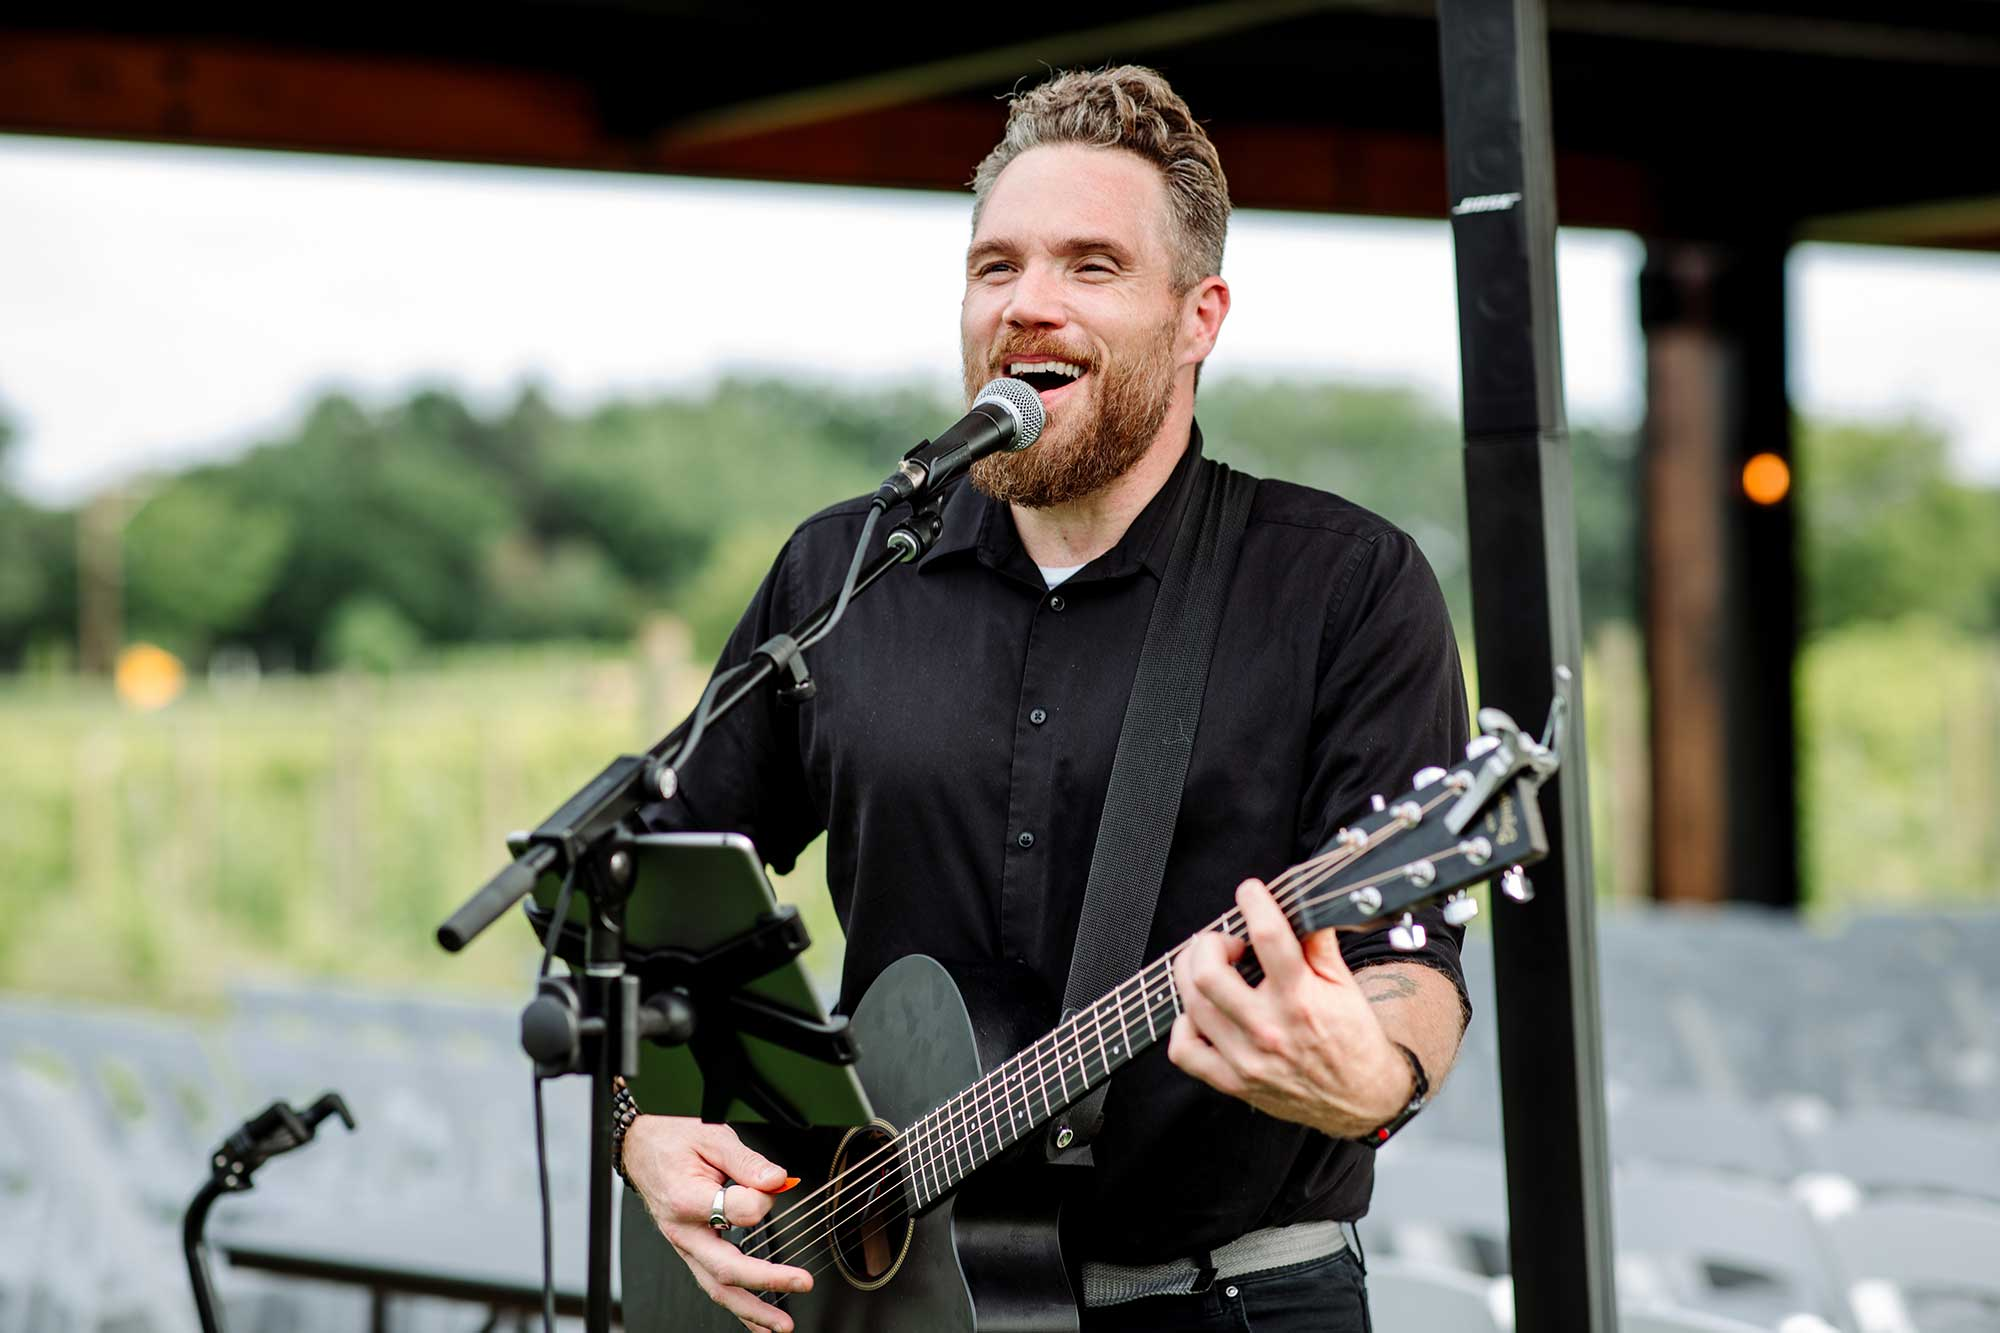 musician Nate Amor performs during ceremony and cocktail hour at 7 vines vinyard wedding mn